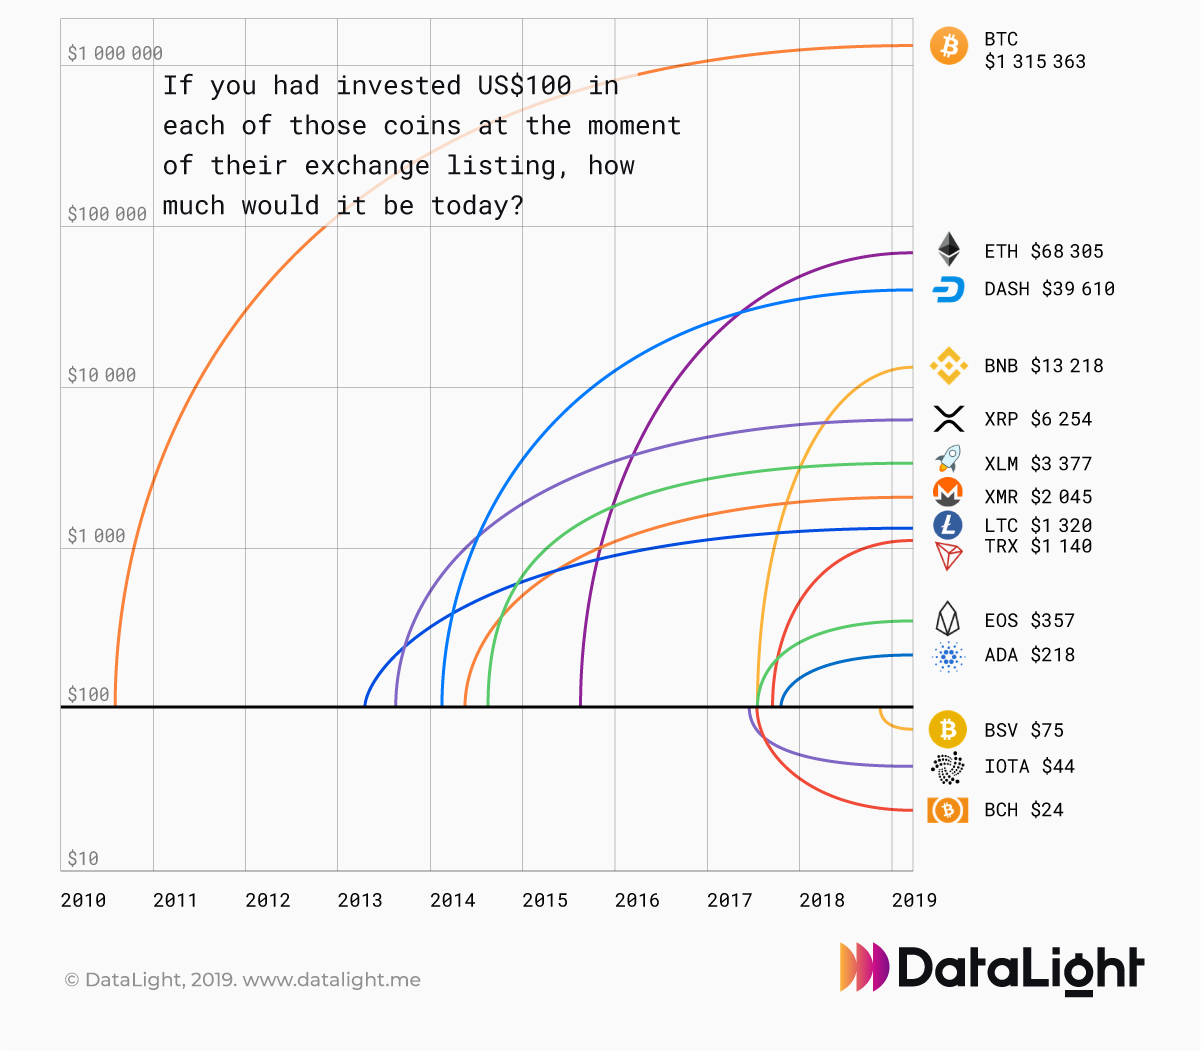 If you invested US$ 100 at date of ICO - these would now be worth